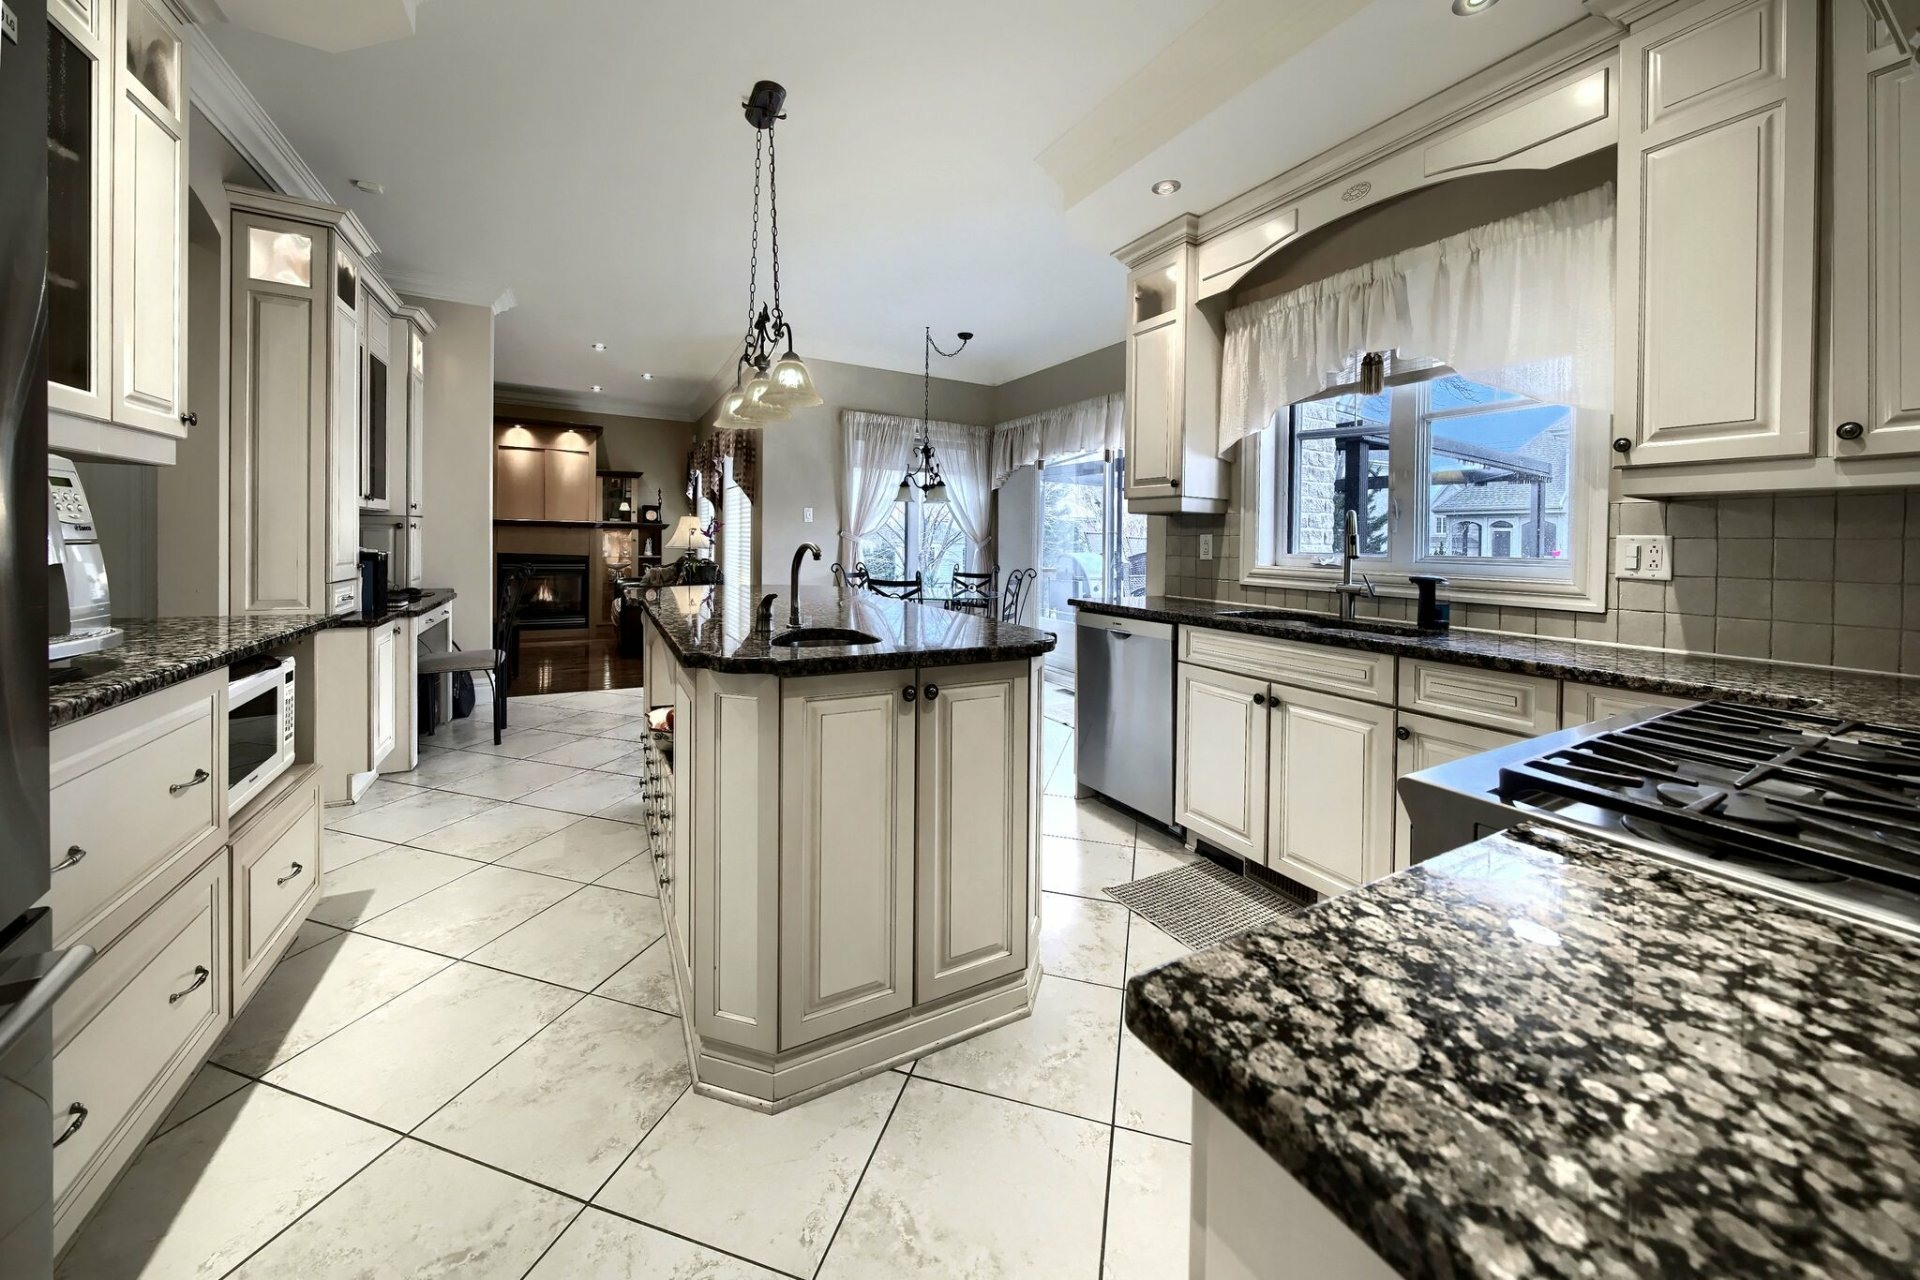 image 5 - House For sale Brossard - 17 rooms